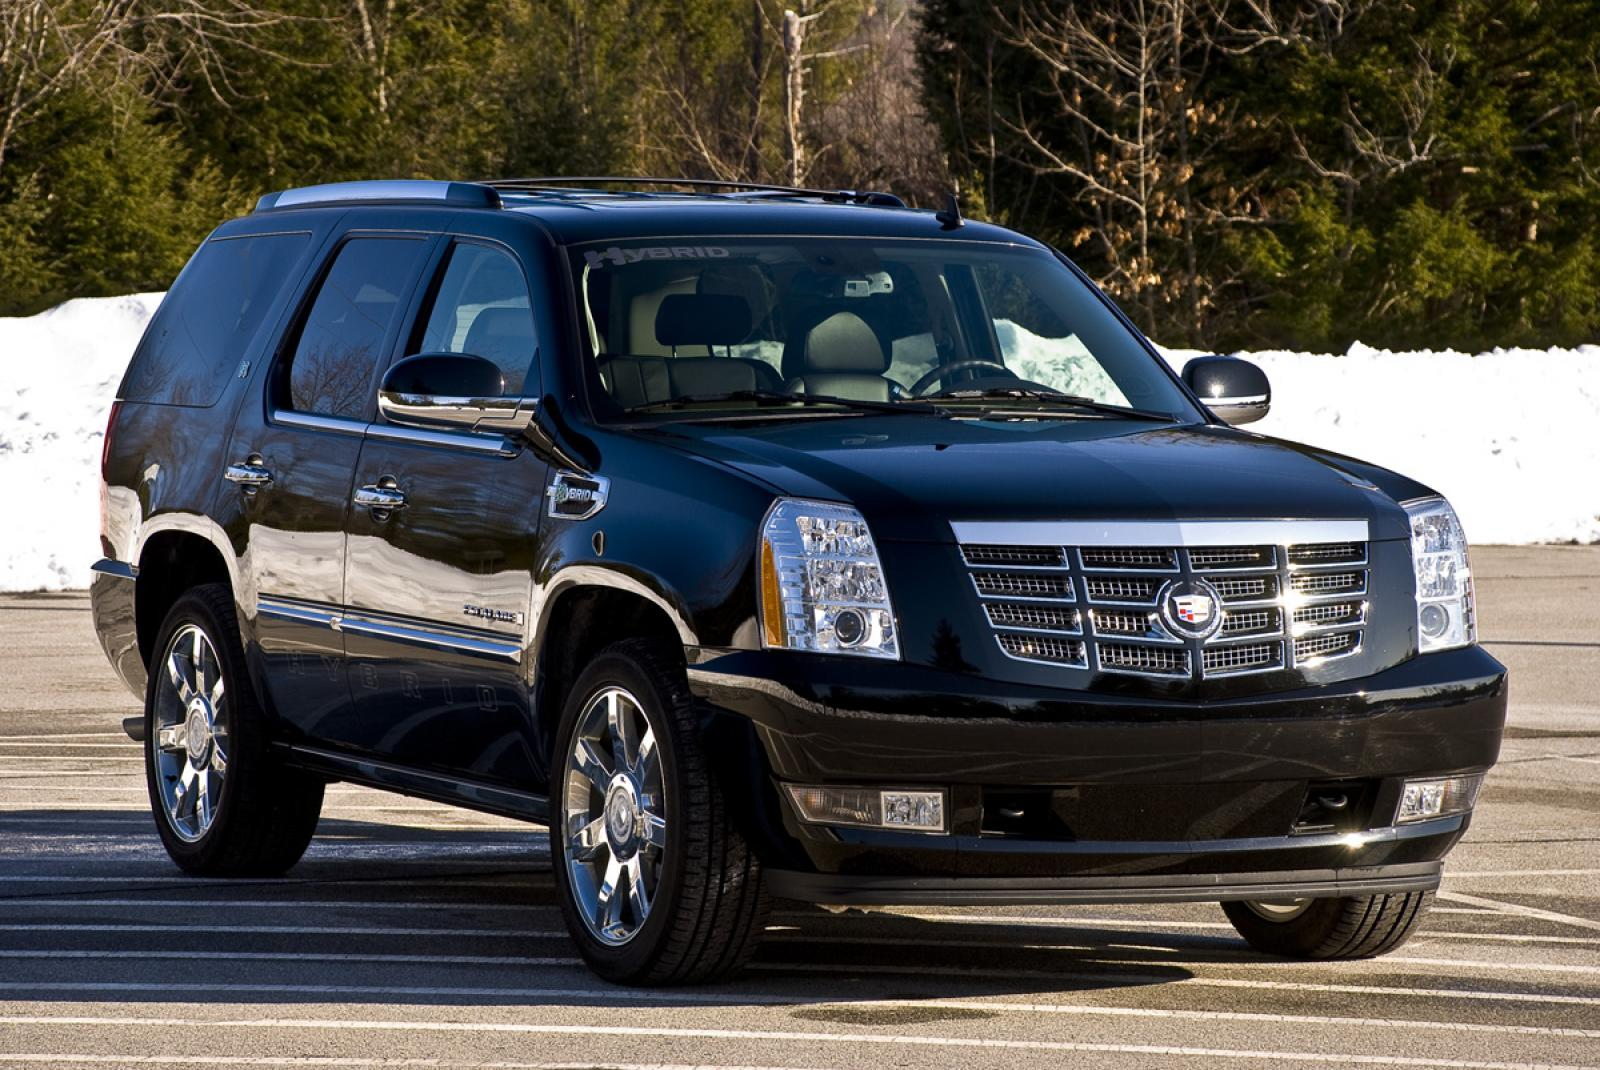 2009 cadillac escalade hybrid information and photos zombiedrive. Cars Review. Best American Auto & Cars Review